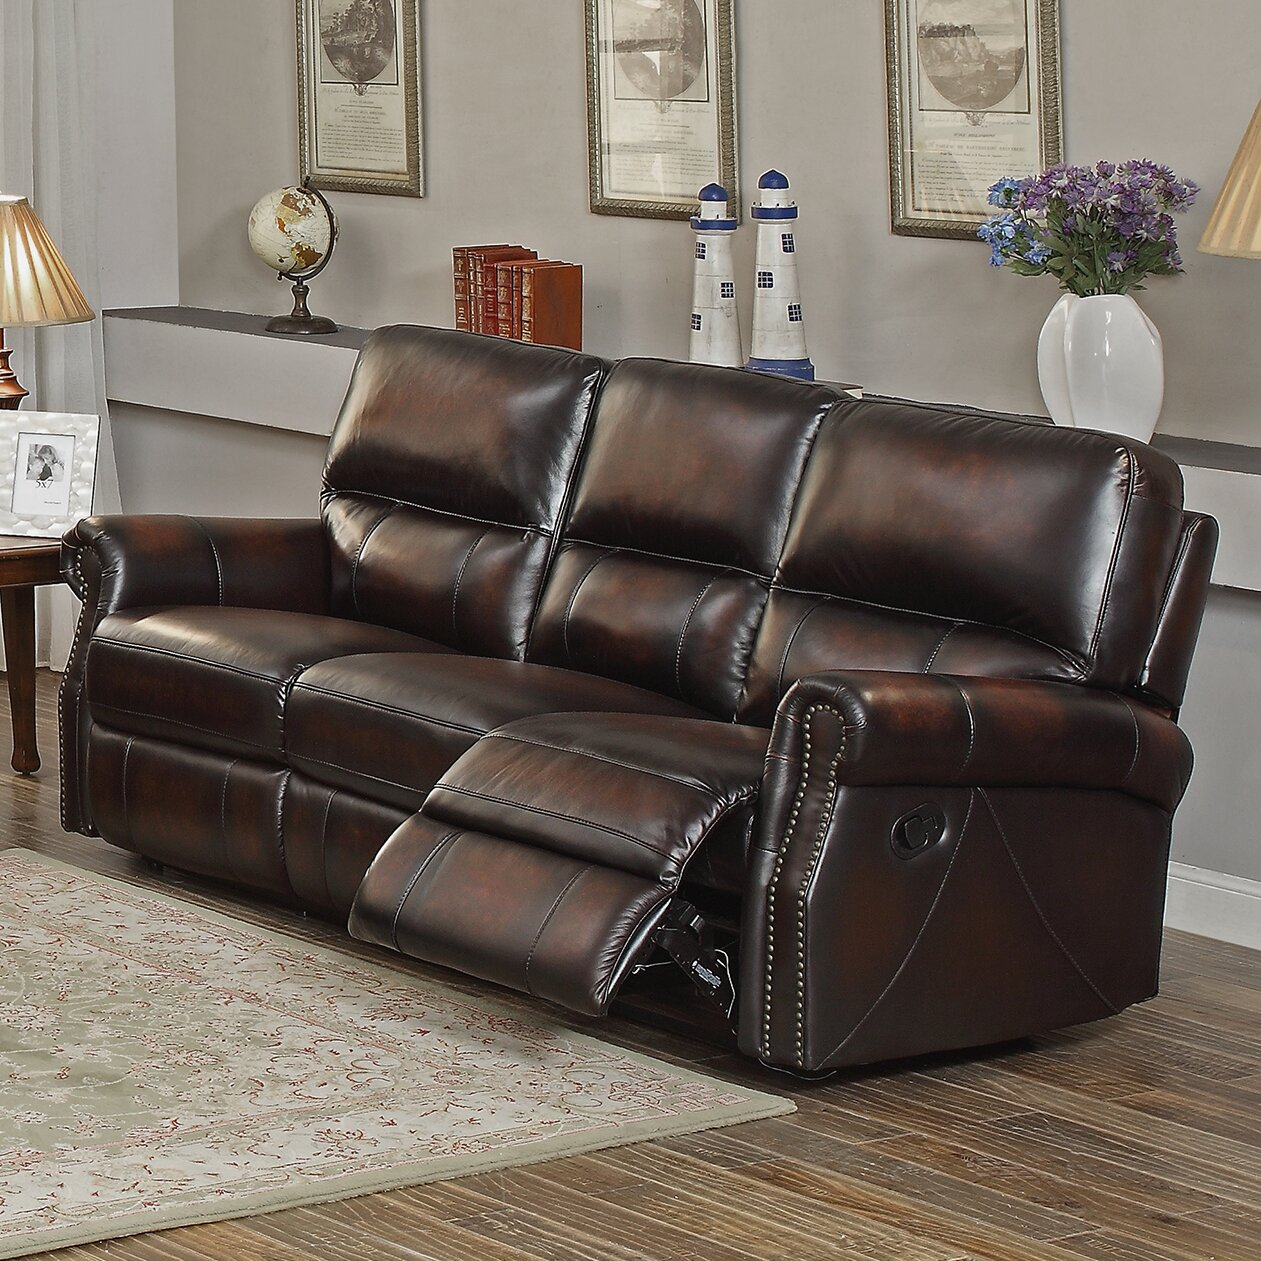 Amax nevada 2 piece leather living room set reviews 2 piece leather living room set